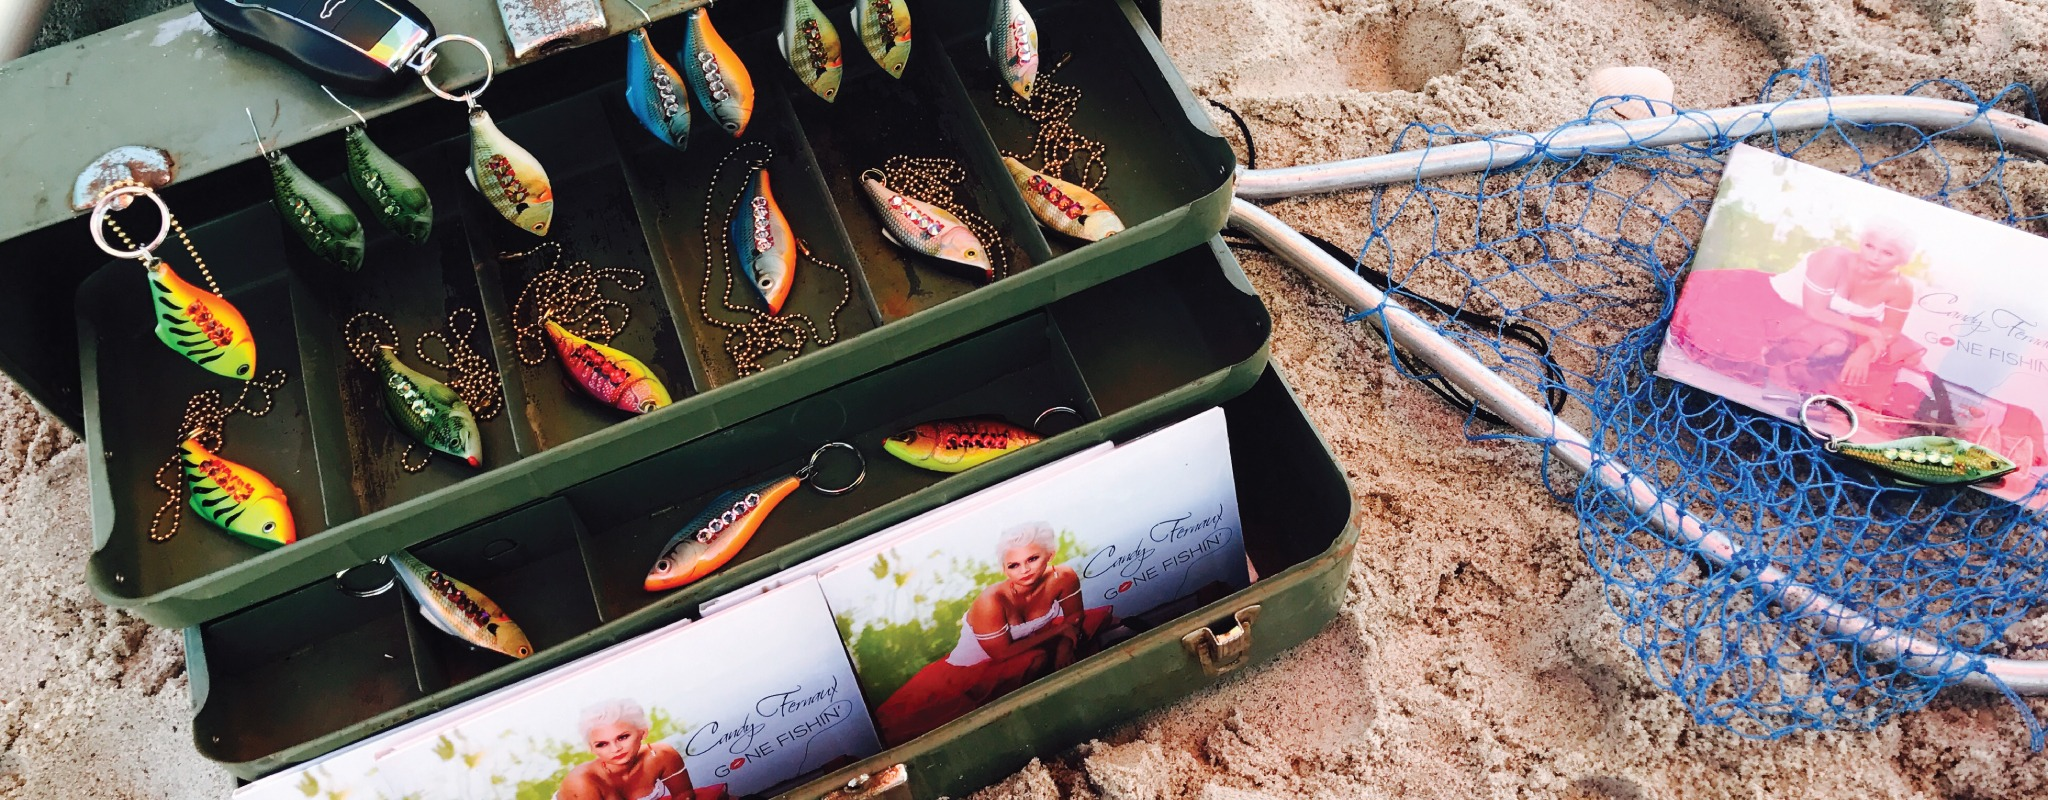 2017 Gone Fishin' Tackle Box